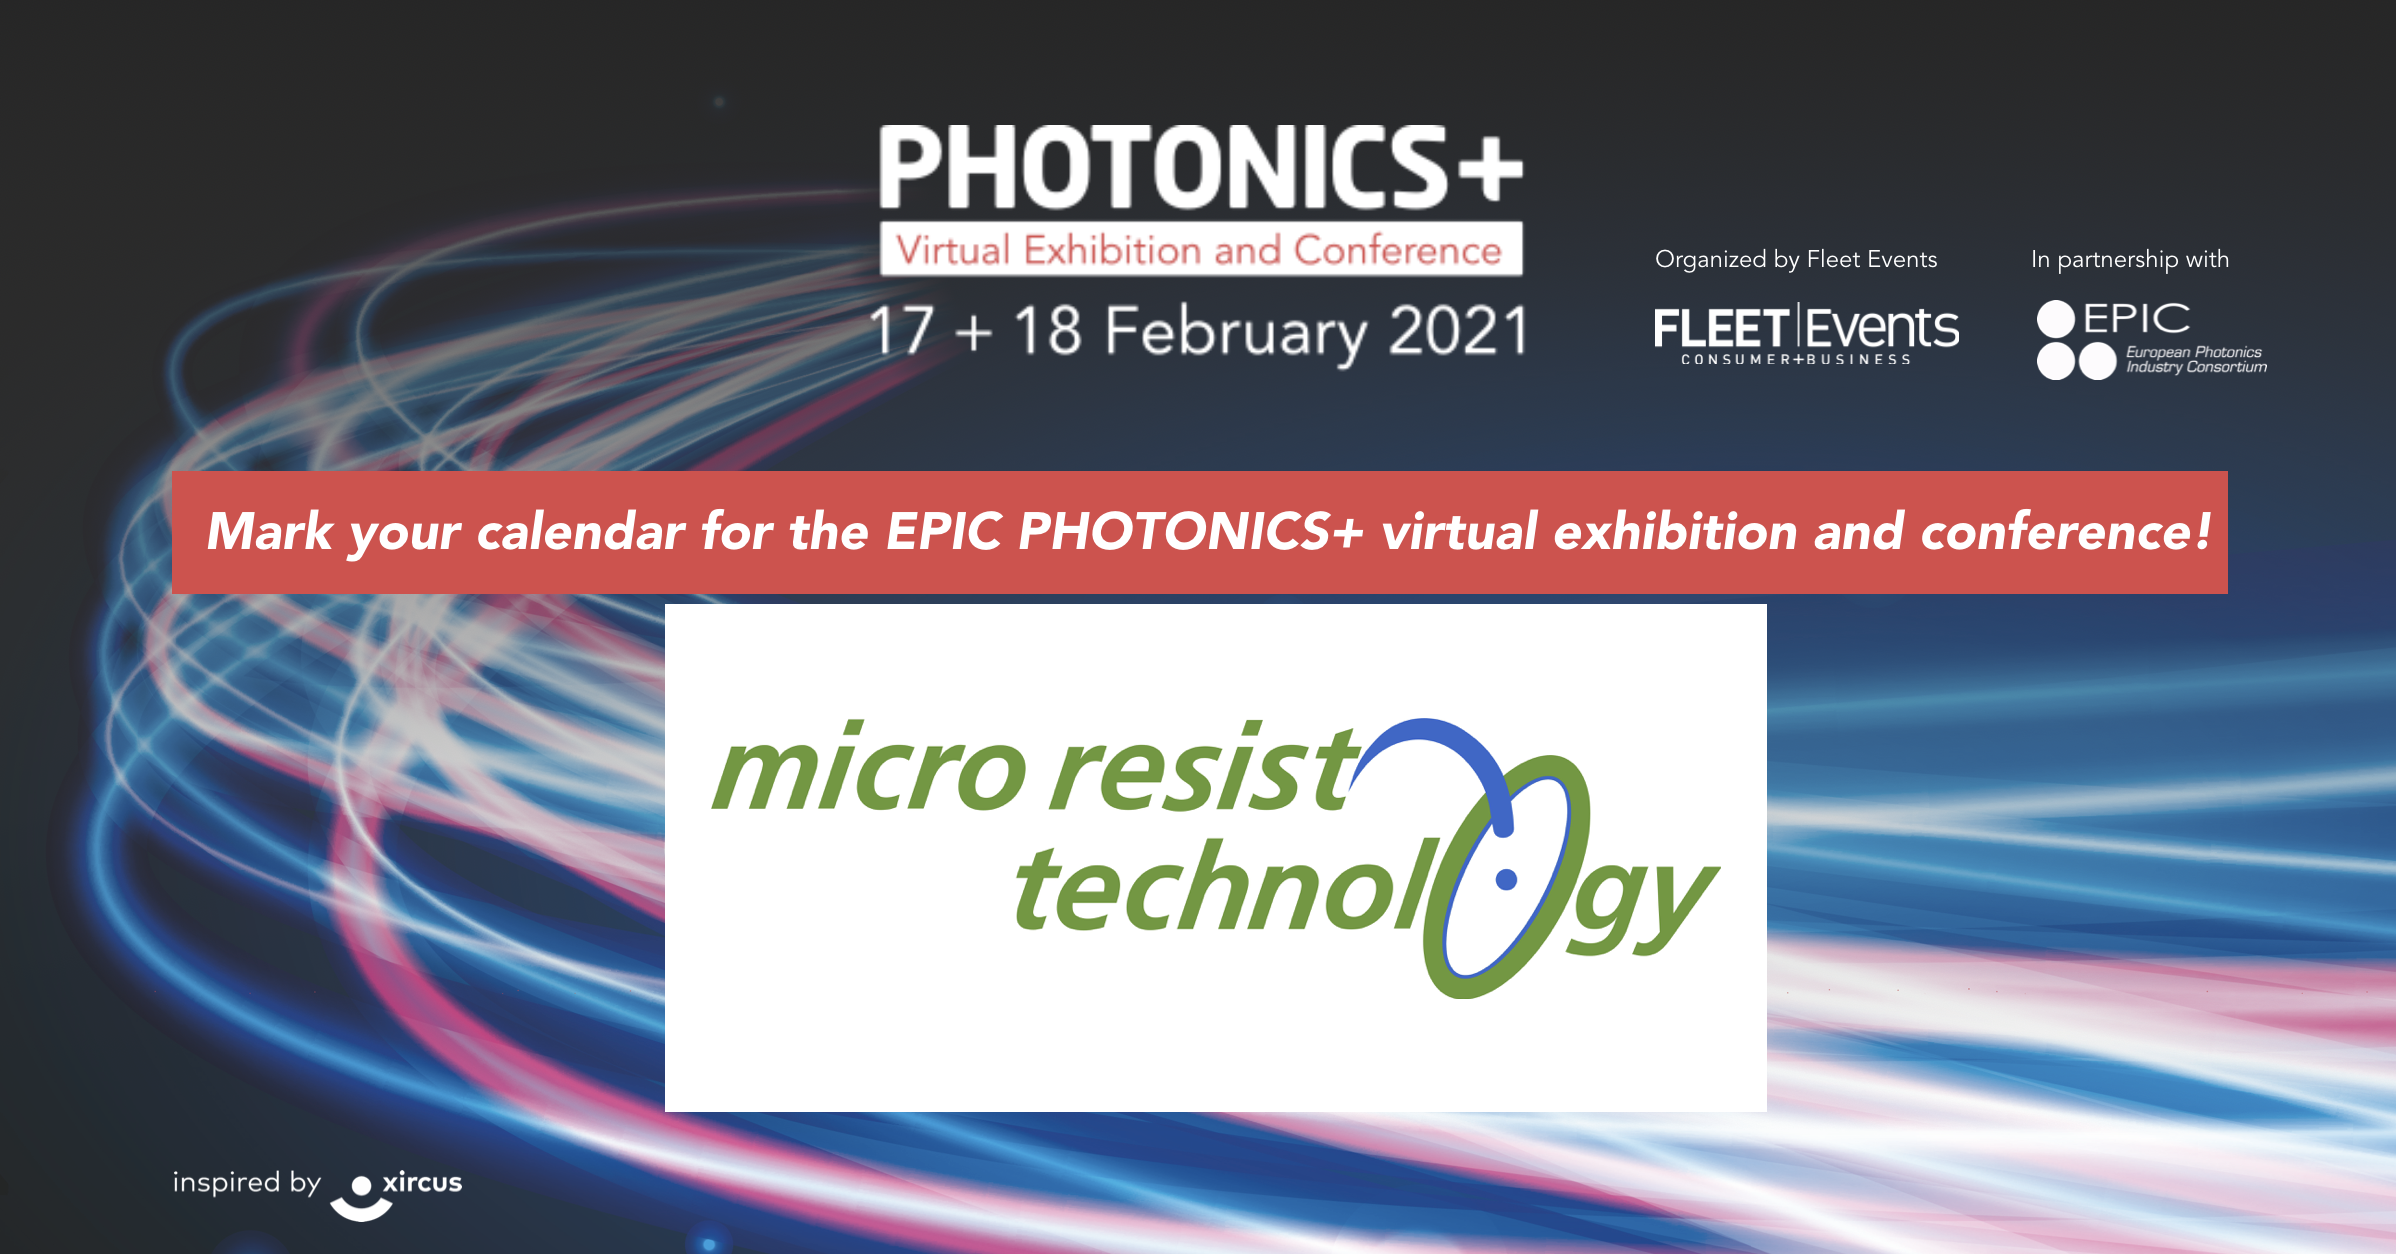 Virtual Exhibition and Conference PHOTONICS+